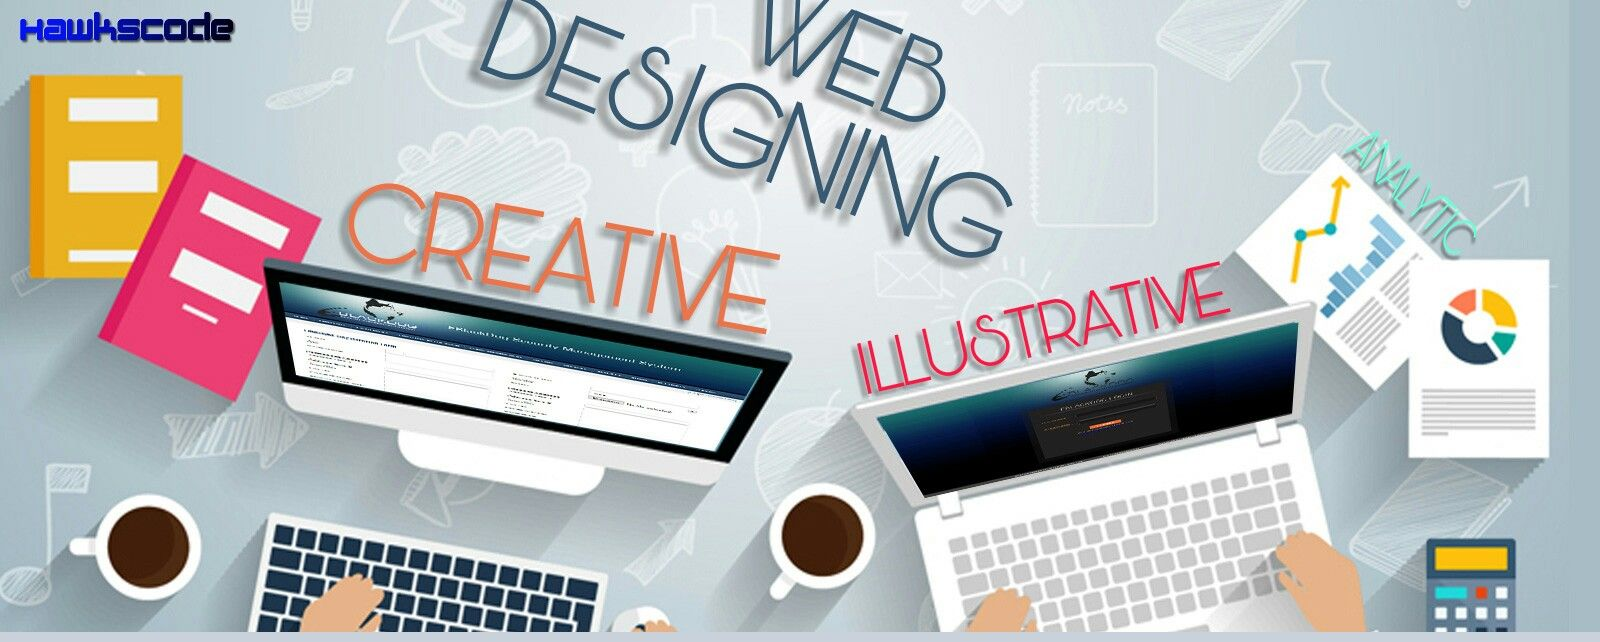 We are illustrative creative analytic so do our designs are